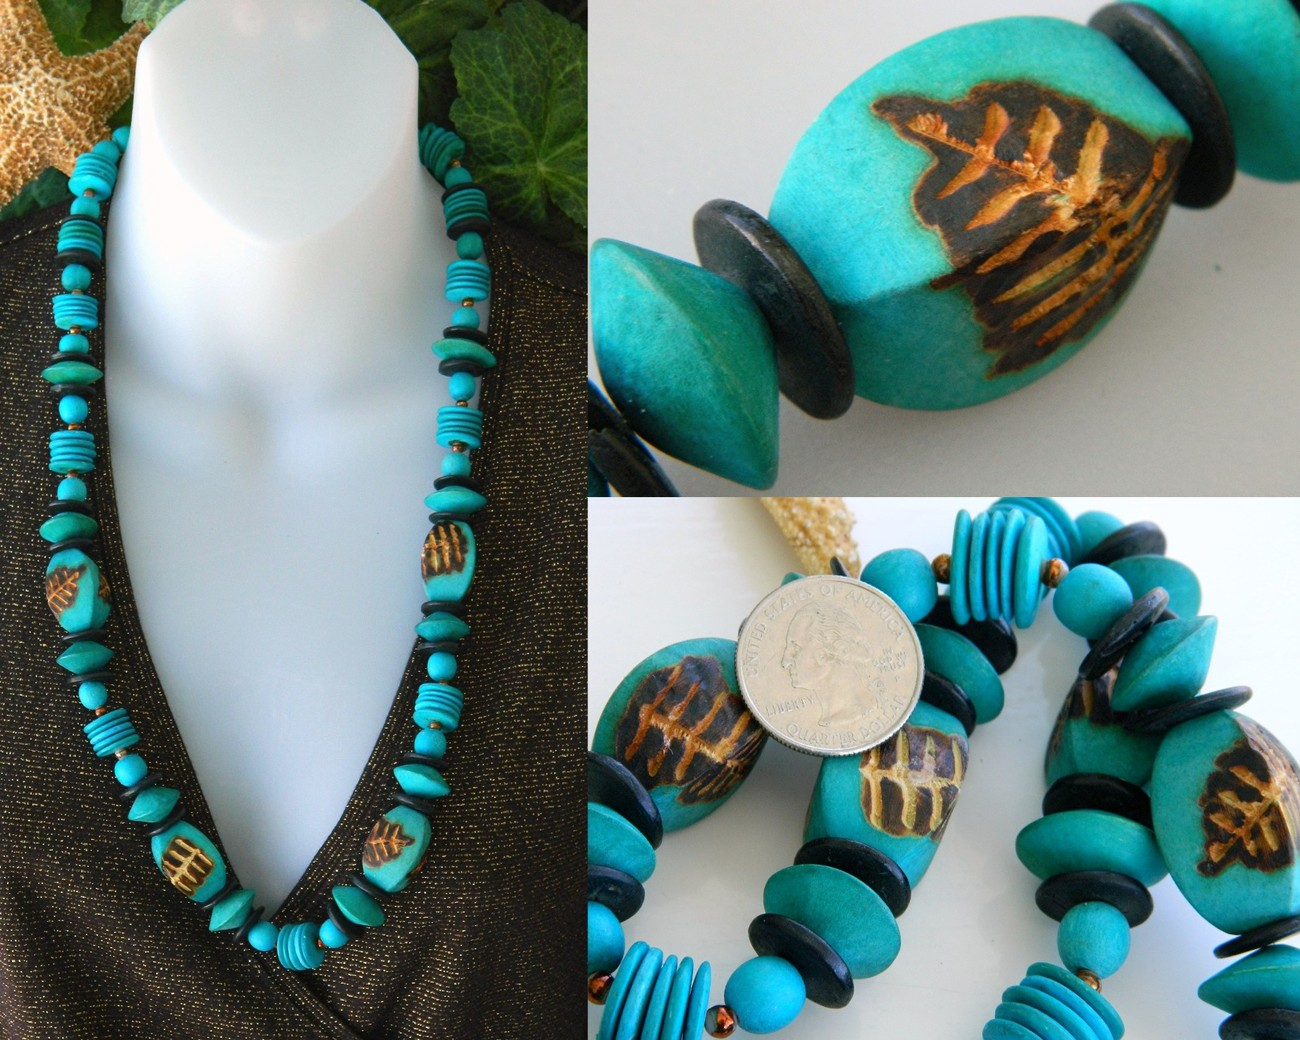 Wooden beads turquoise necklace vintage woodburning